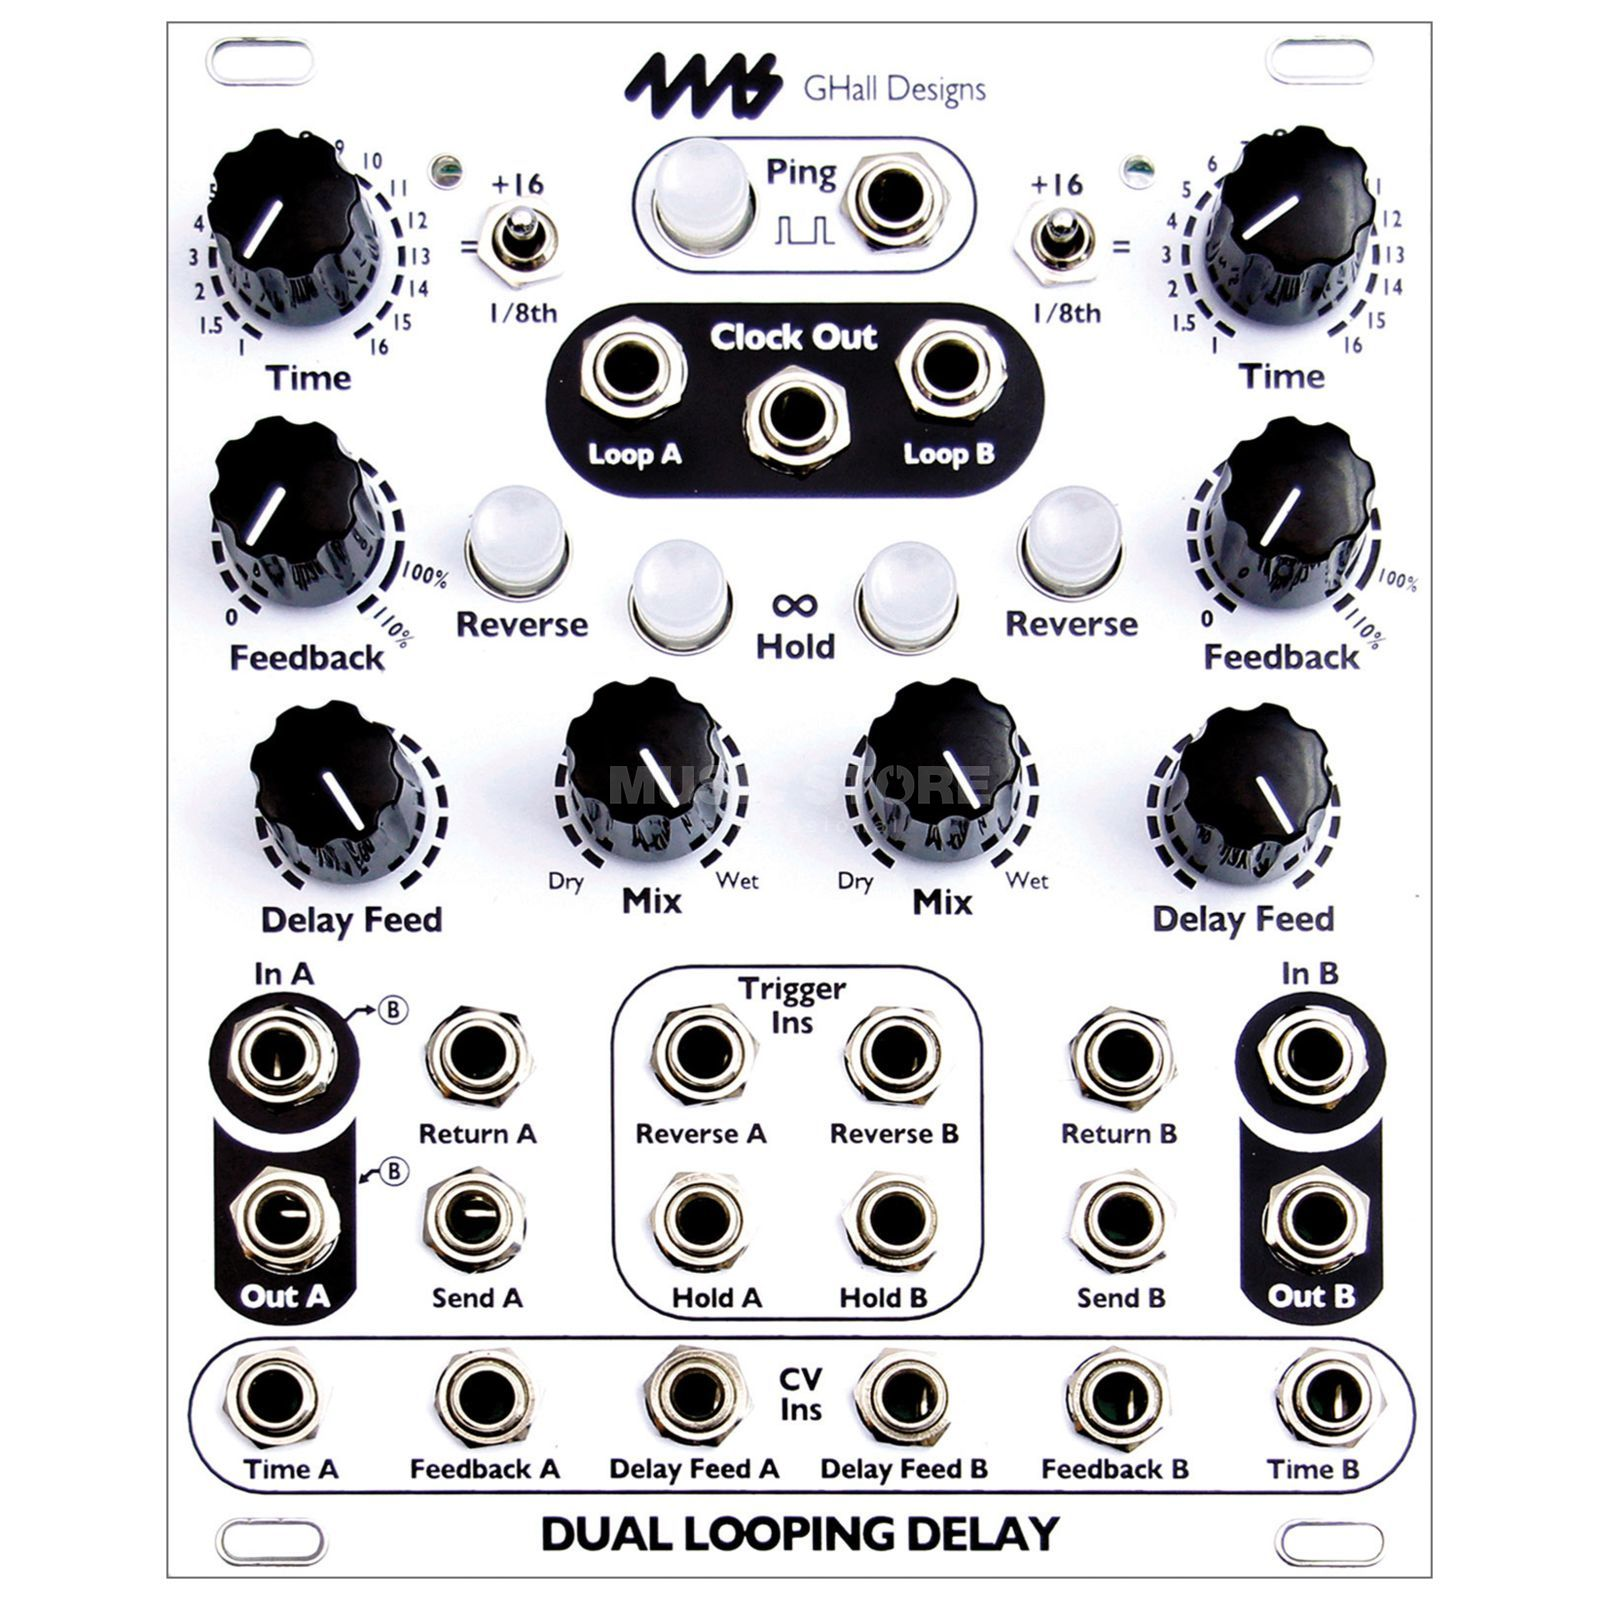 4ms Dual Looping Delay Product Image